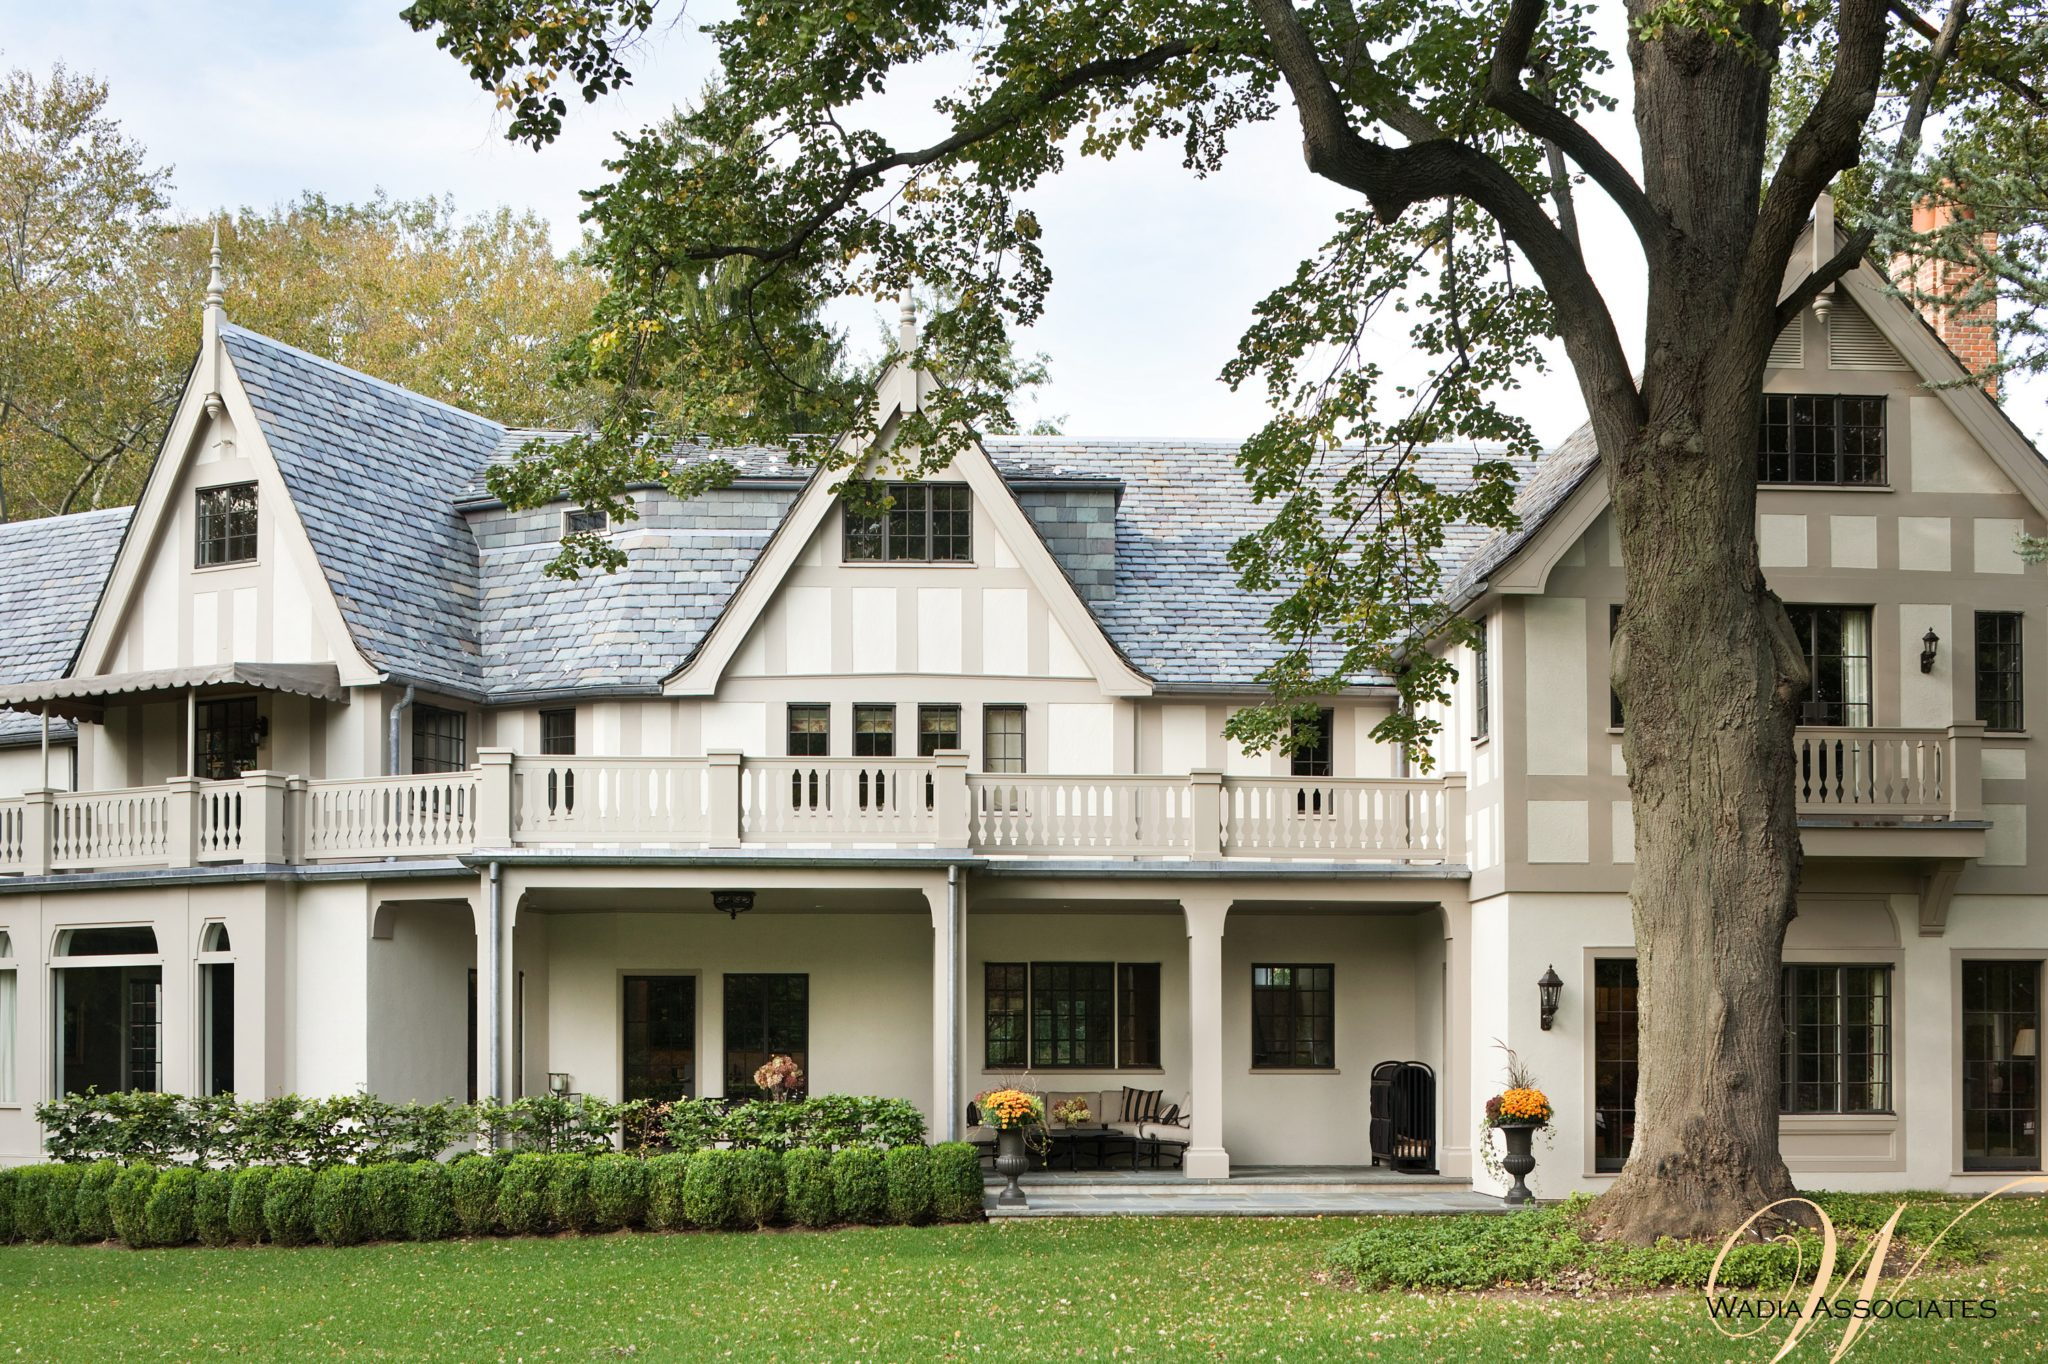 A grand view of this American Tudor Arts & Crafts home's welcoming exterior across the front lawn. by Wadia Associates